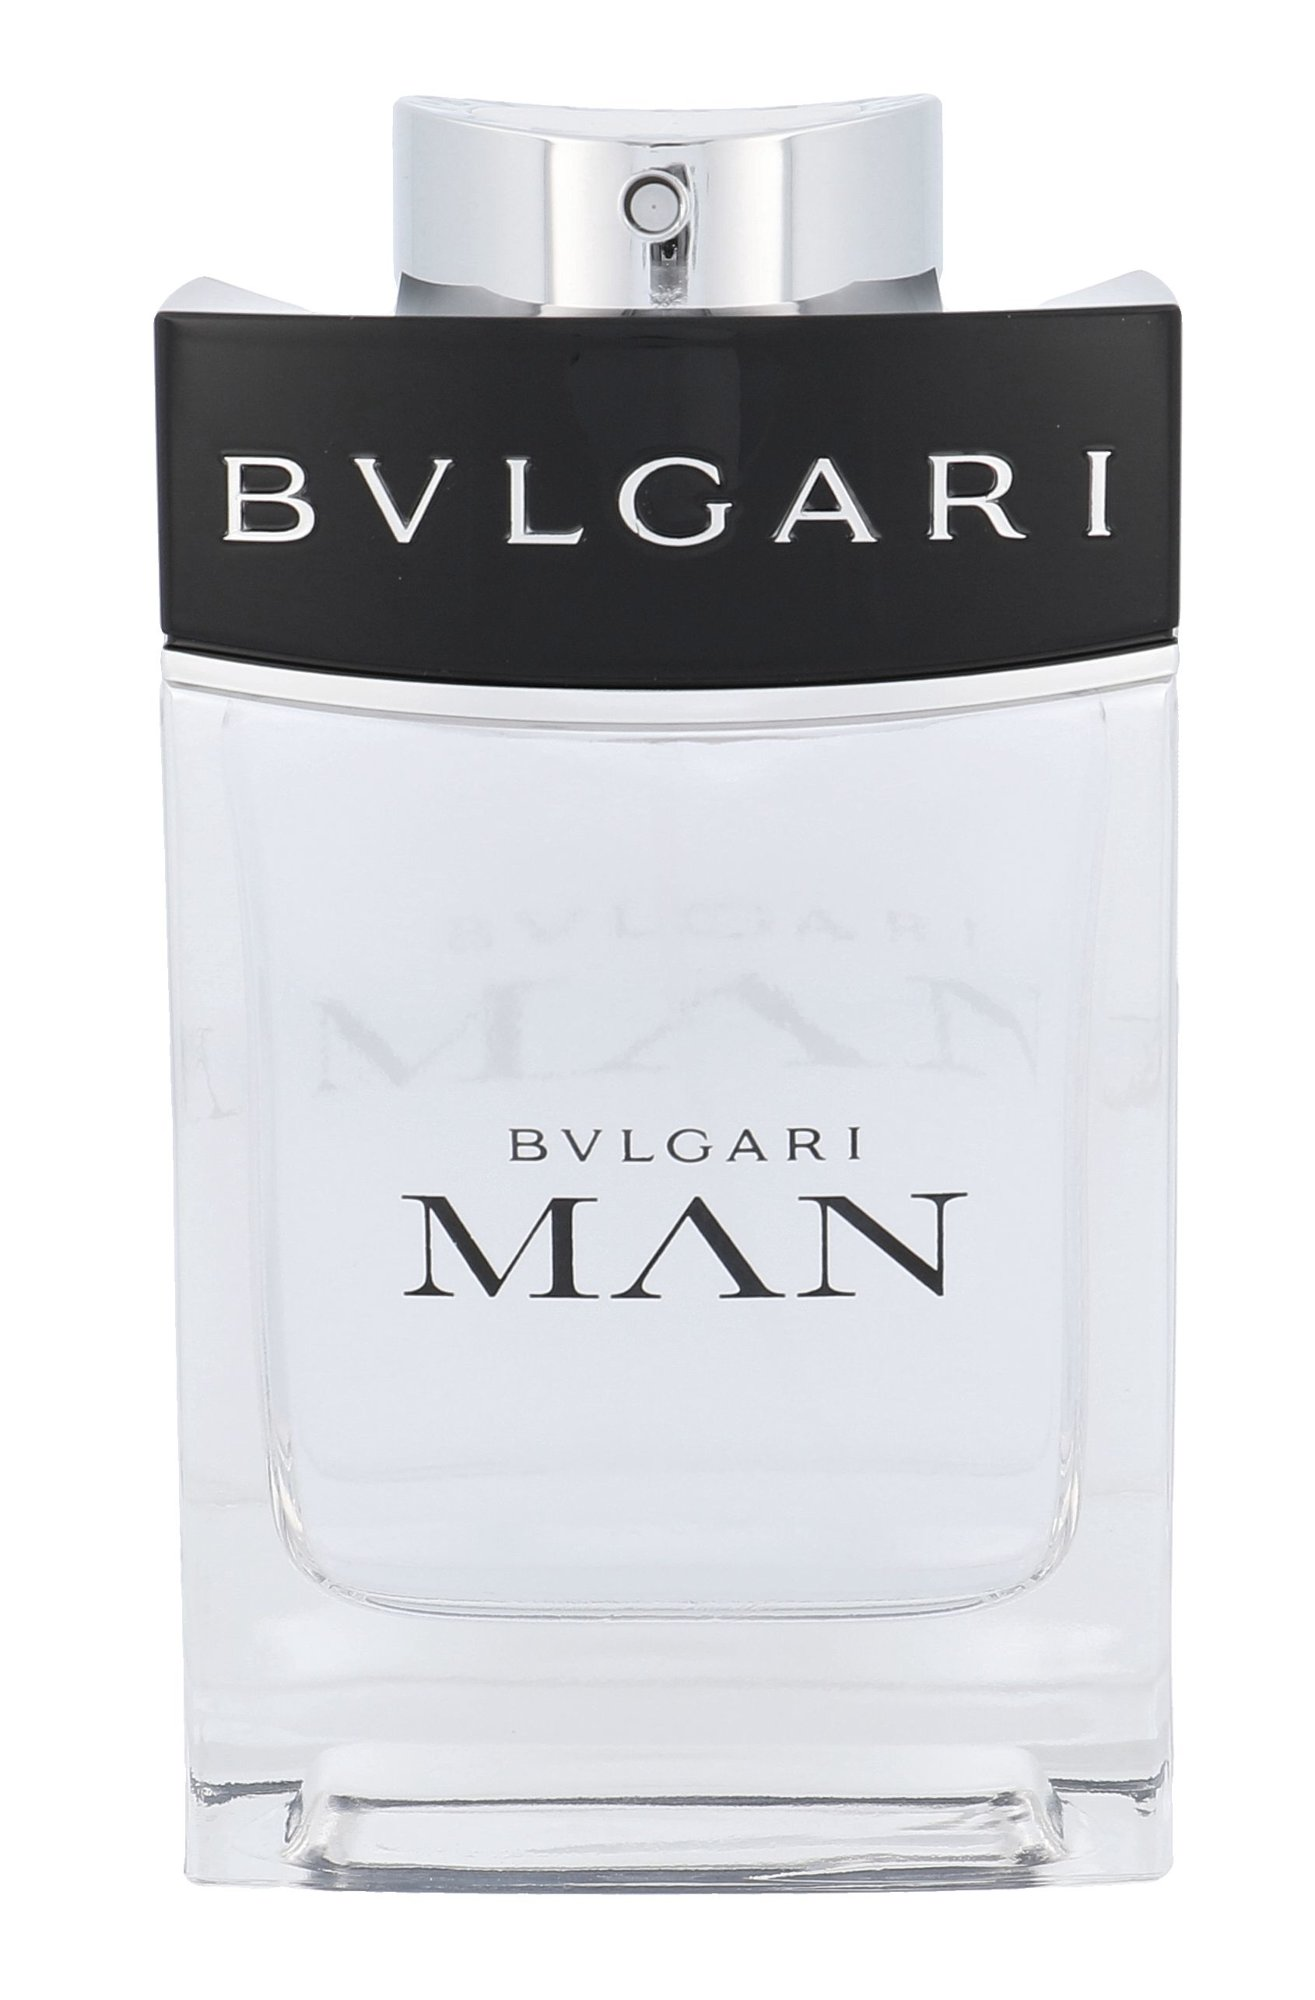 Bvlgari Bvlgari Man EDT 100ml